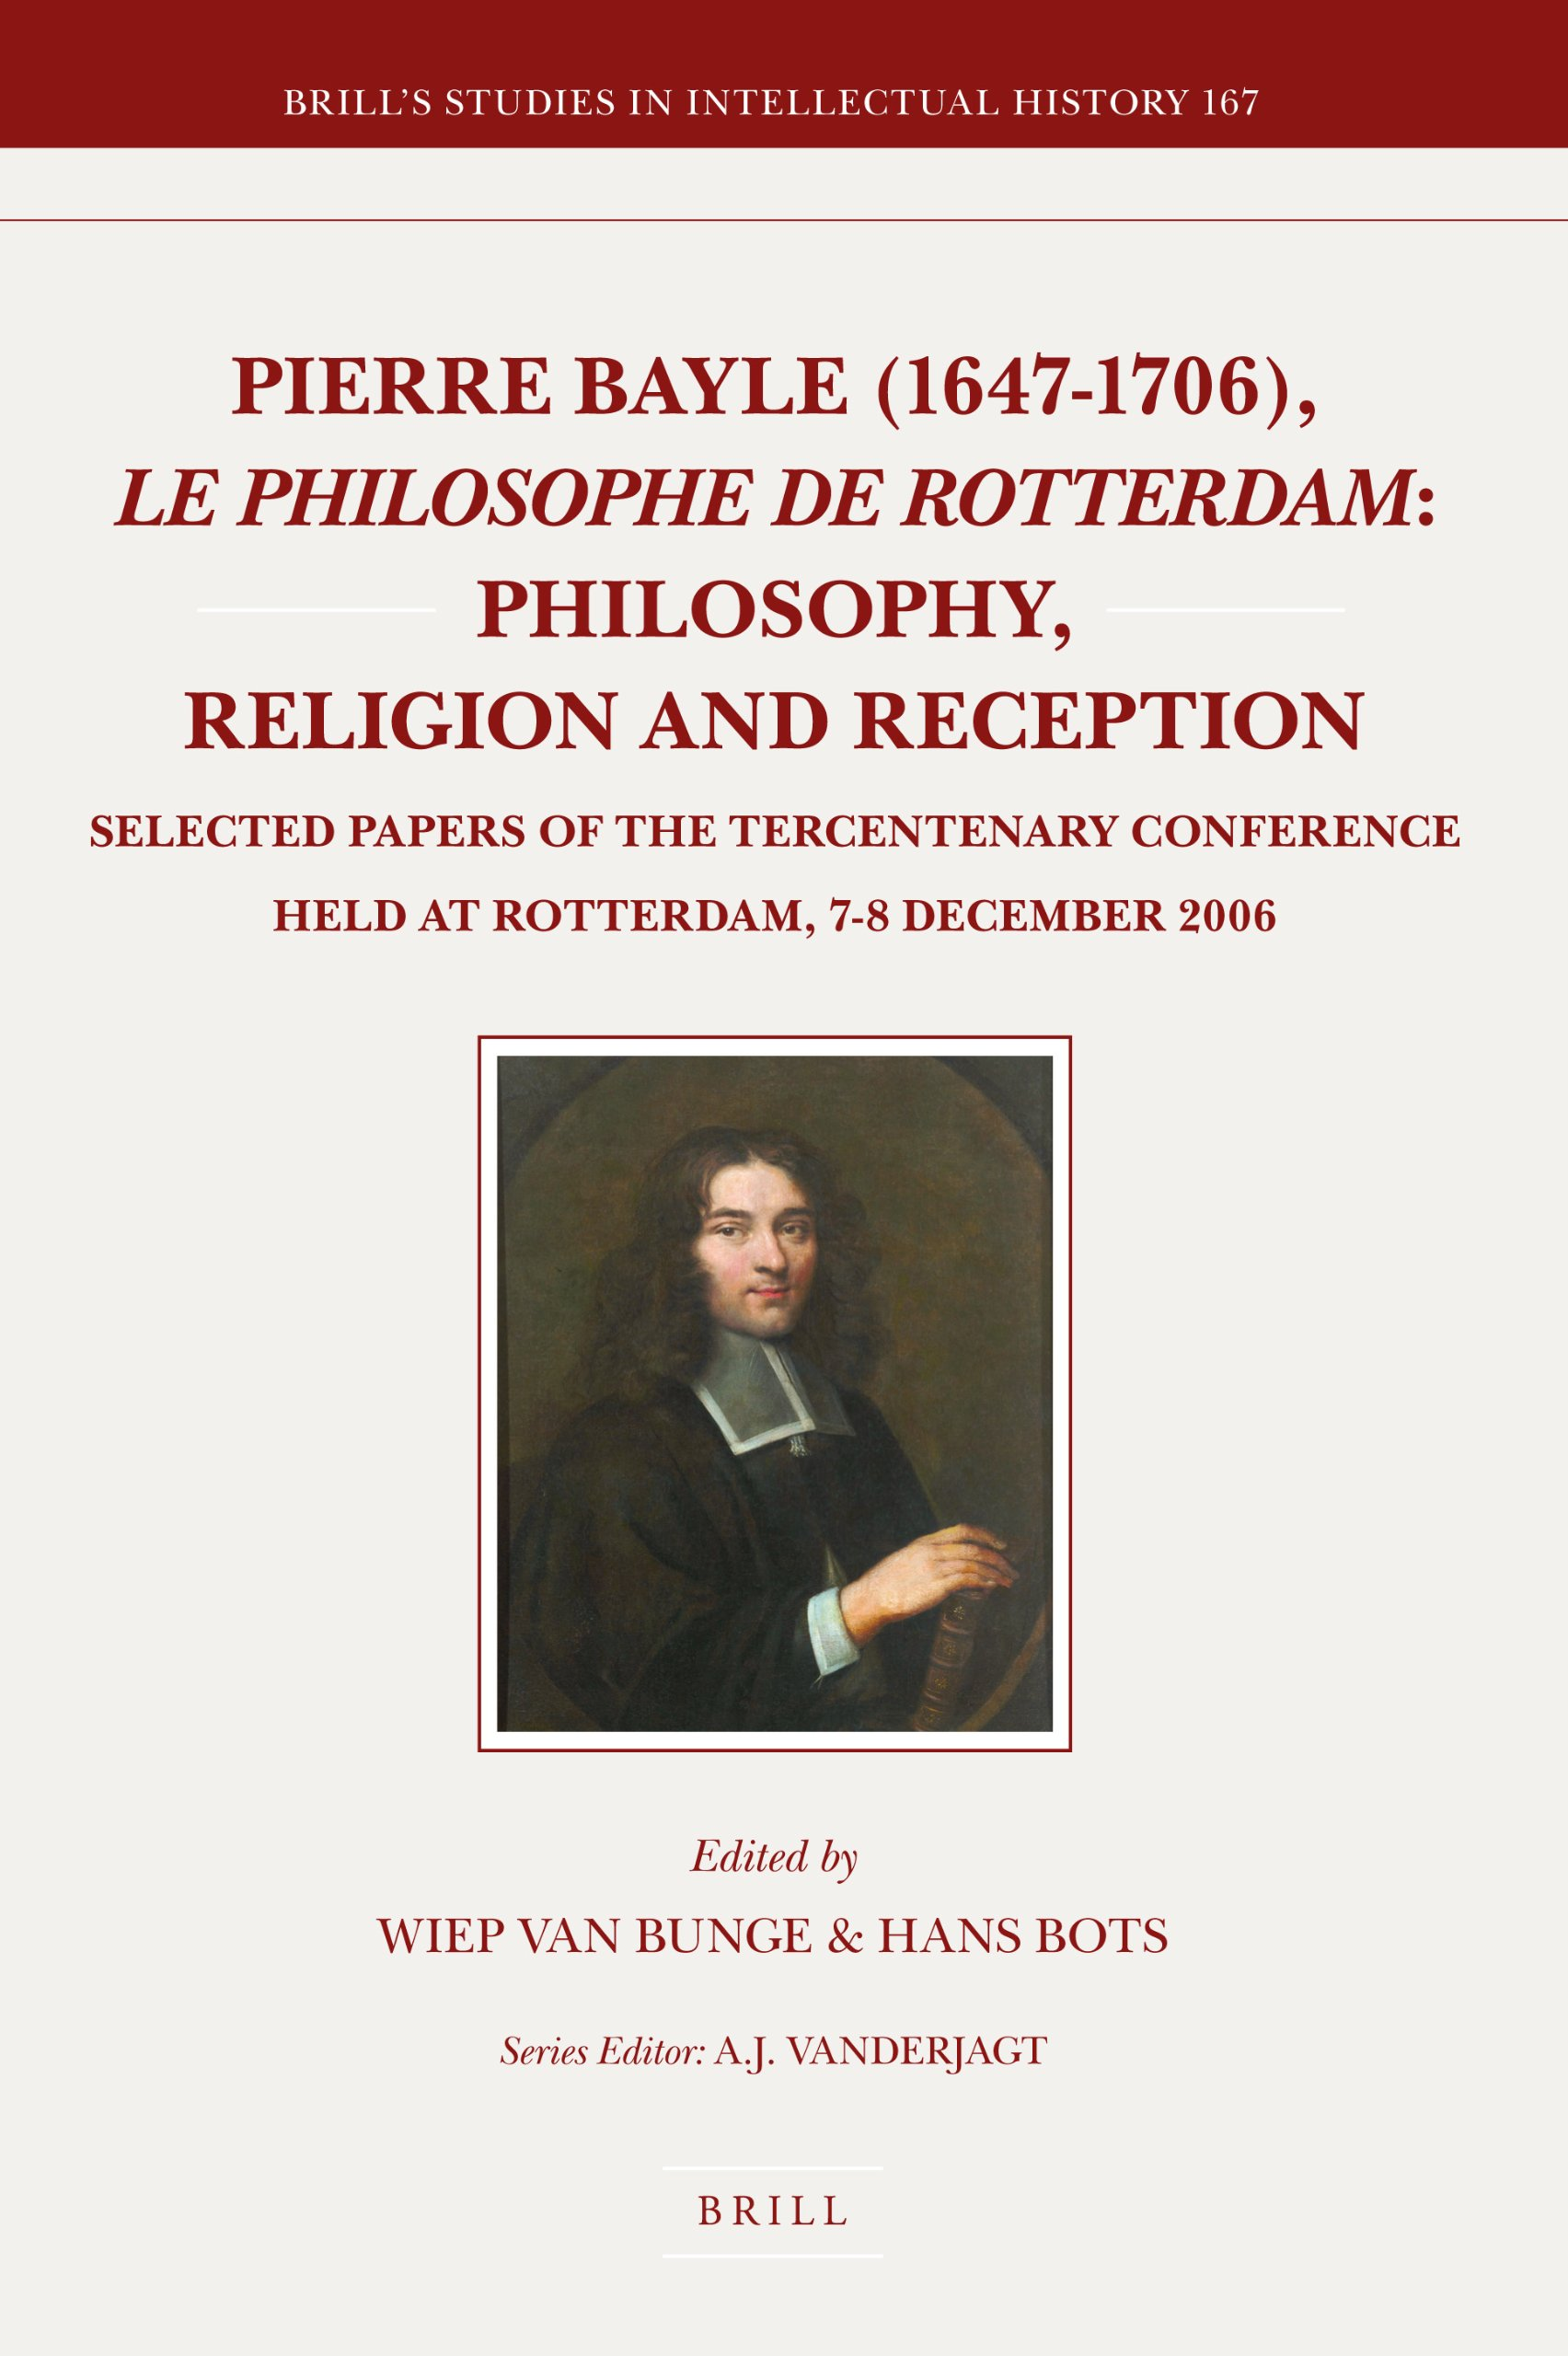 Download Pierre Bayle (1647-1706), le philosophe de Rotterdam, Philosophy, Religion and Reception: Selected Papers of the Tercentenary Conference Held at ... 2006 (Brill's Studies in Intellectual History) pdf